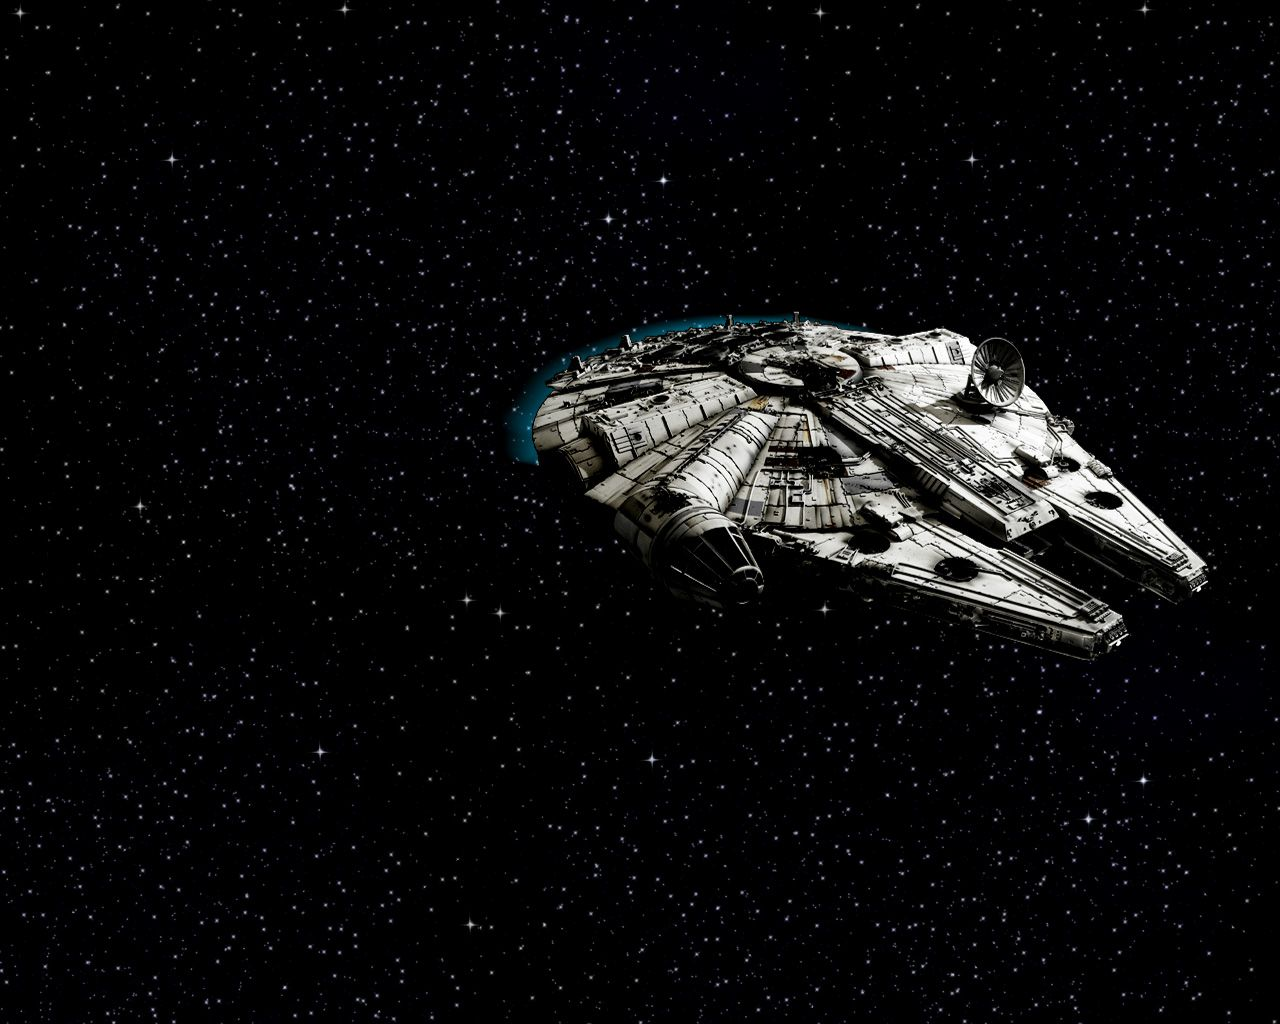 Displaying images for millenium falcon cockpit wallpaper - Star Wars Movie Wallpaper Biography George Lucas Third Film Star Wars Changed Everything For The Director